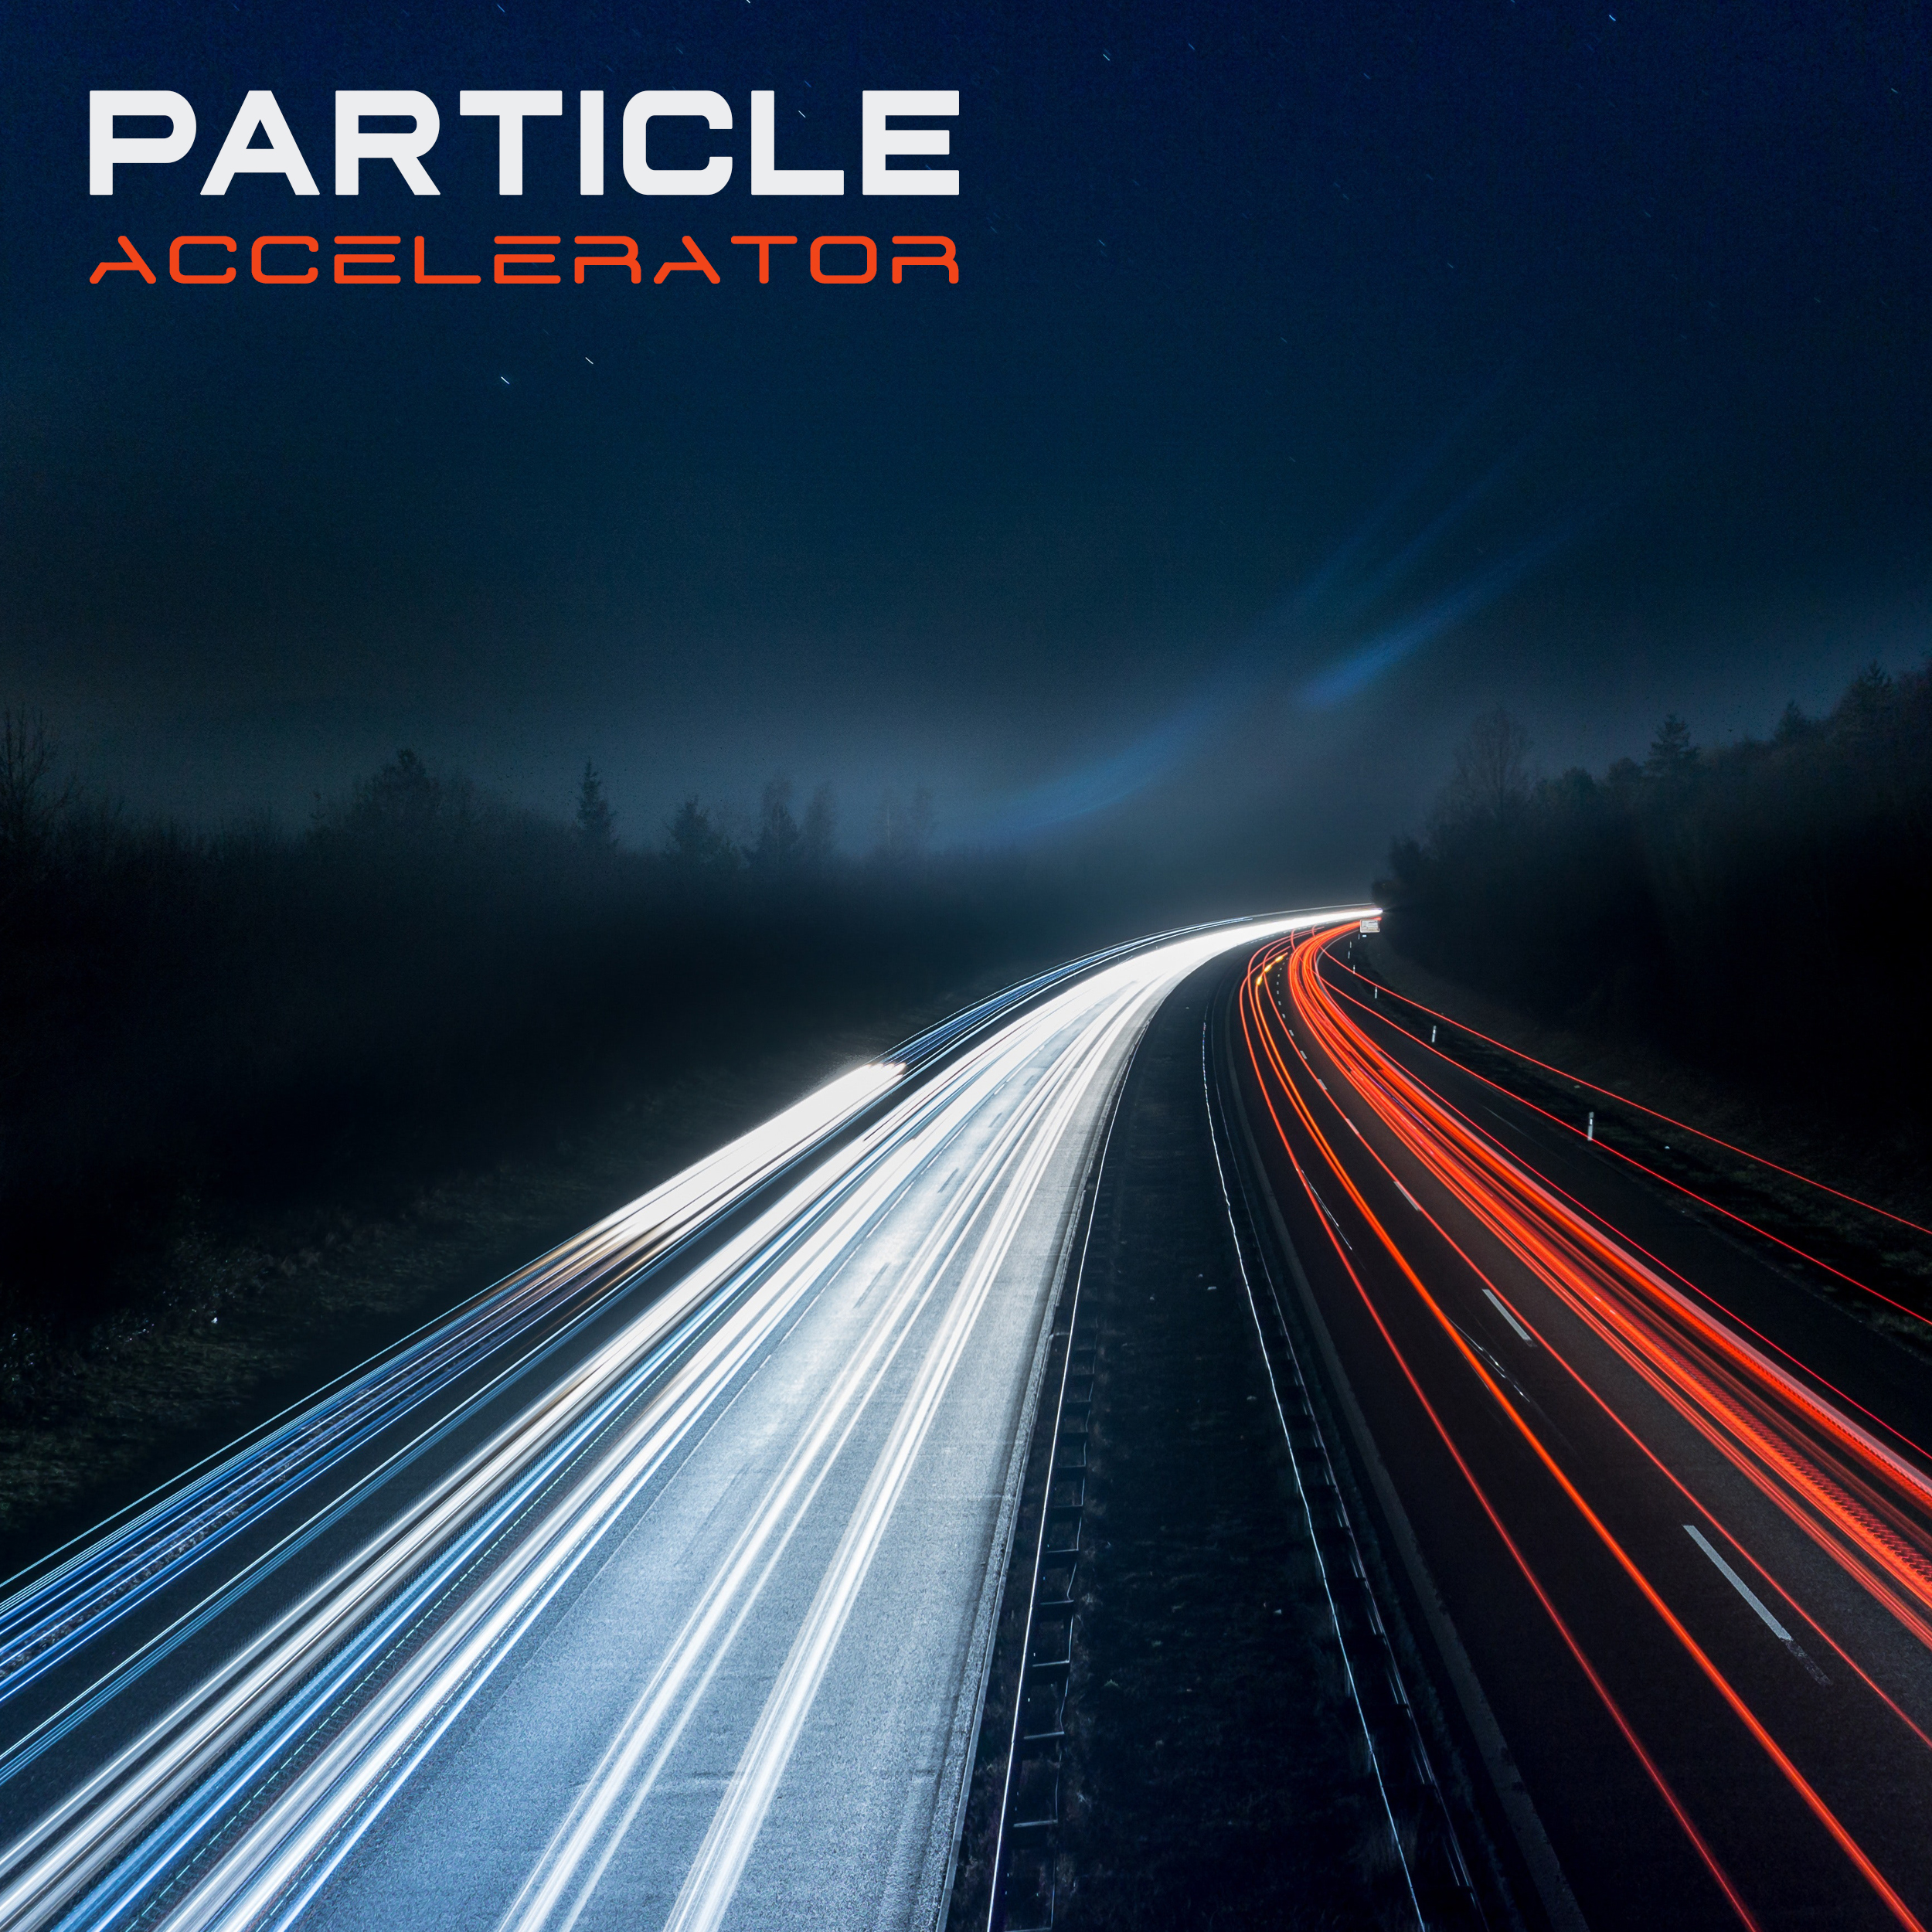 Particle Accelerator Artwork FINAL.jpg